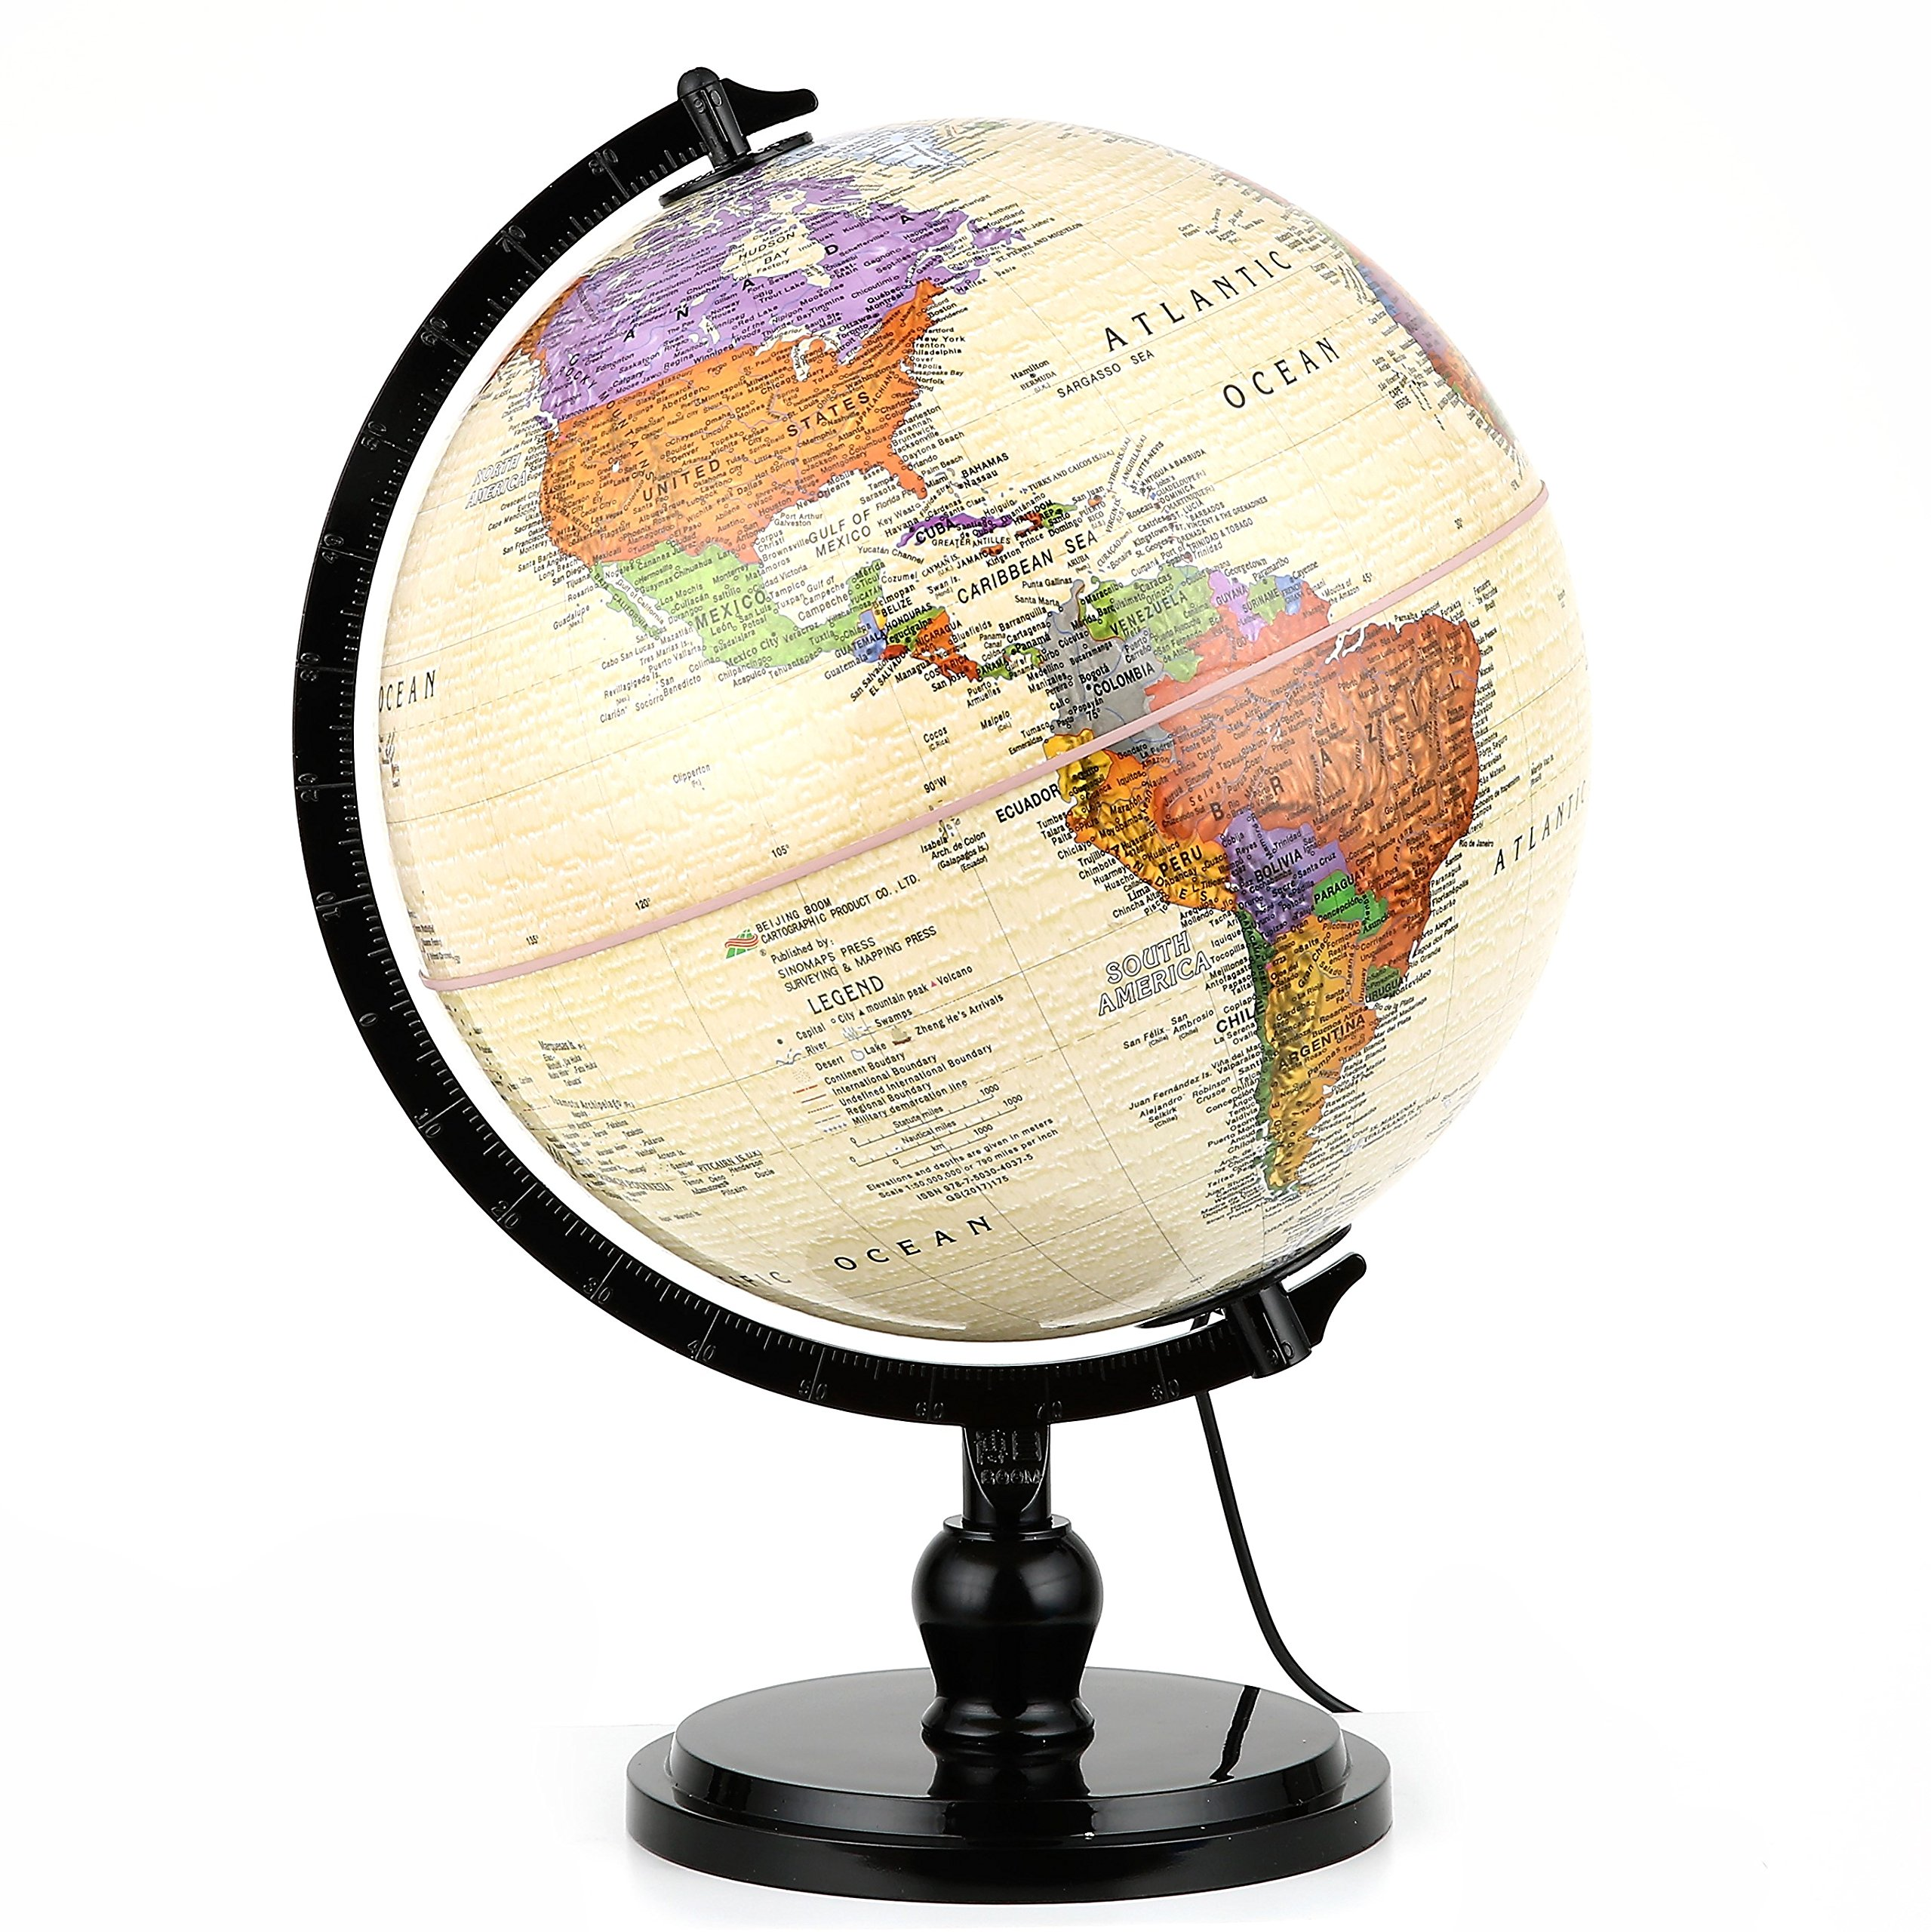 "Illuminated Antique World Globe (10""/25 cm diameter) – Premium Antique Desktop World Globe, Perfect for Home & Office Décor, Over 4,000 Place Names, Energy-Saving LED, Weighted Base"